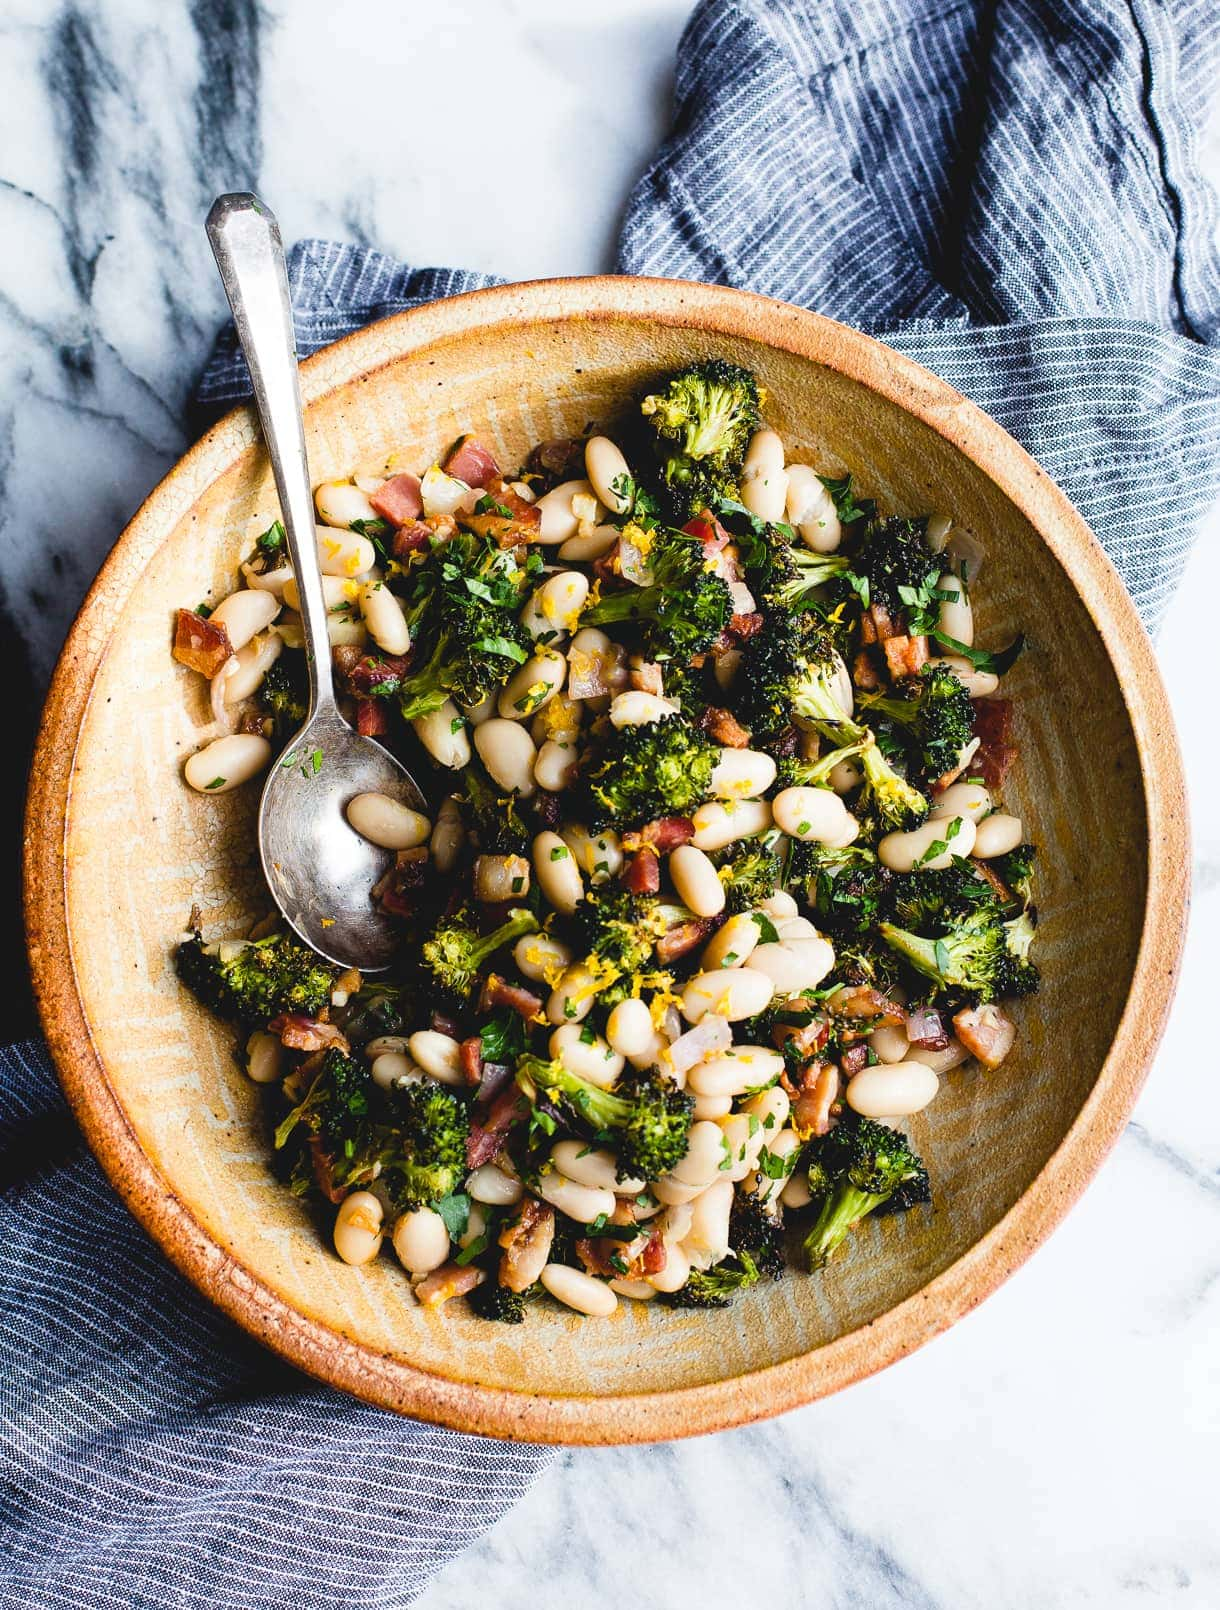 Lemon Roasted Broccoli with Bacon and Great Northern Beans Recipe